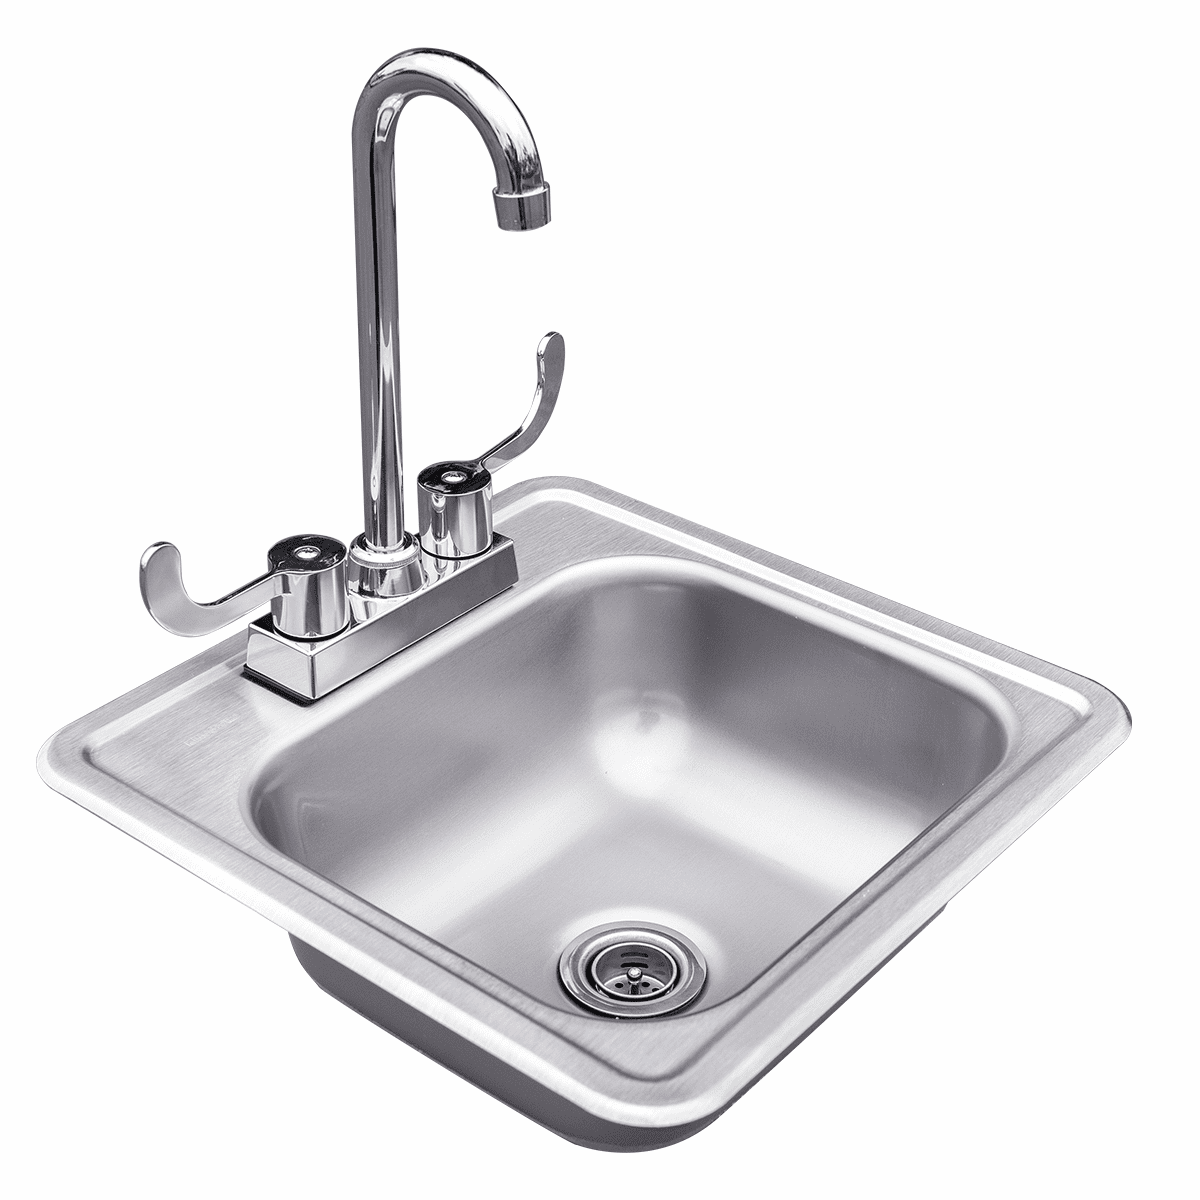 Summerset Sink and Faucet SSNK-2